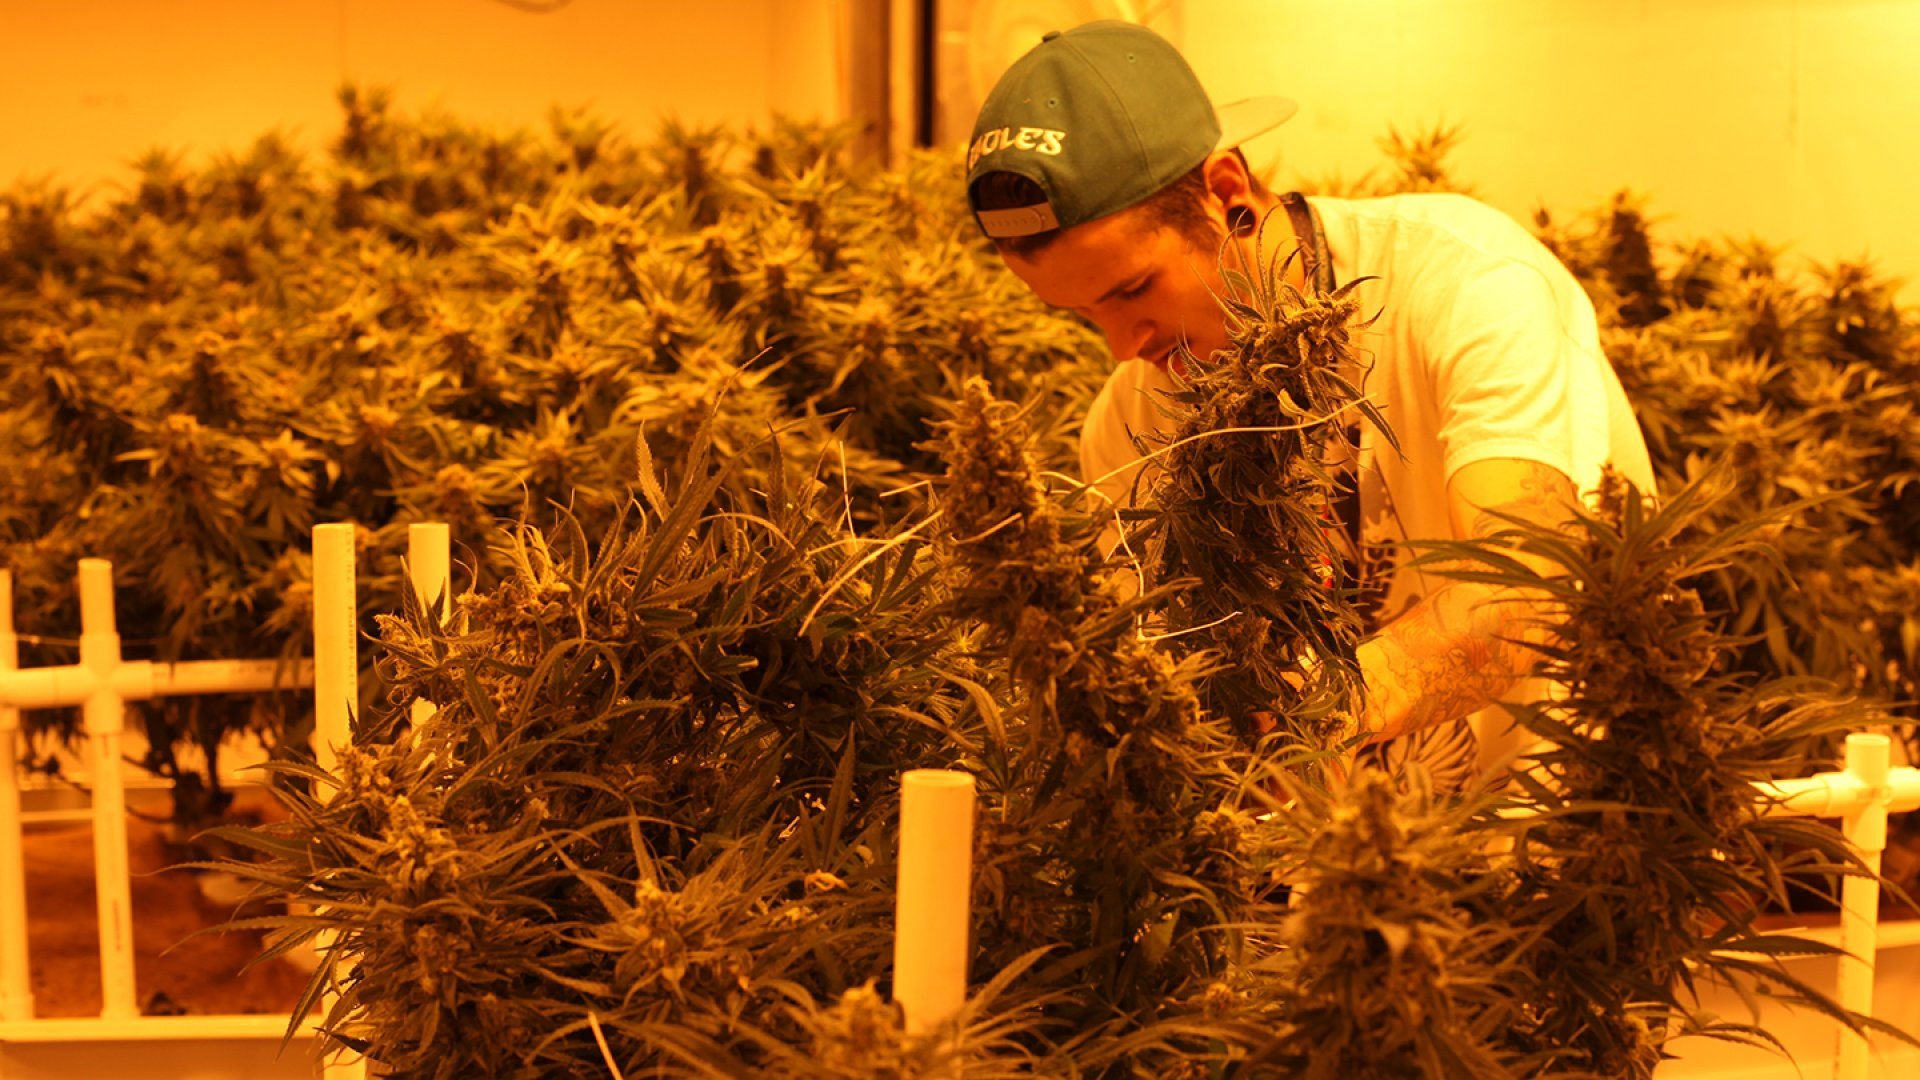 An employee of Dixie Elixirs, a THC oil-infused edibles manufacturer in Denver, tends to hundreds of plants in the company's harvest room.